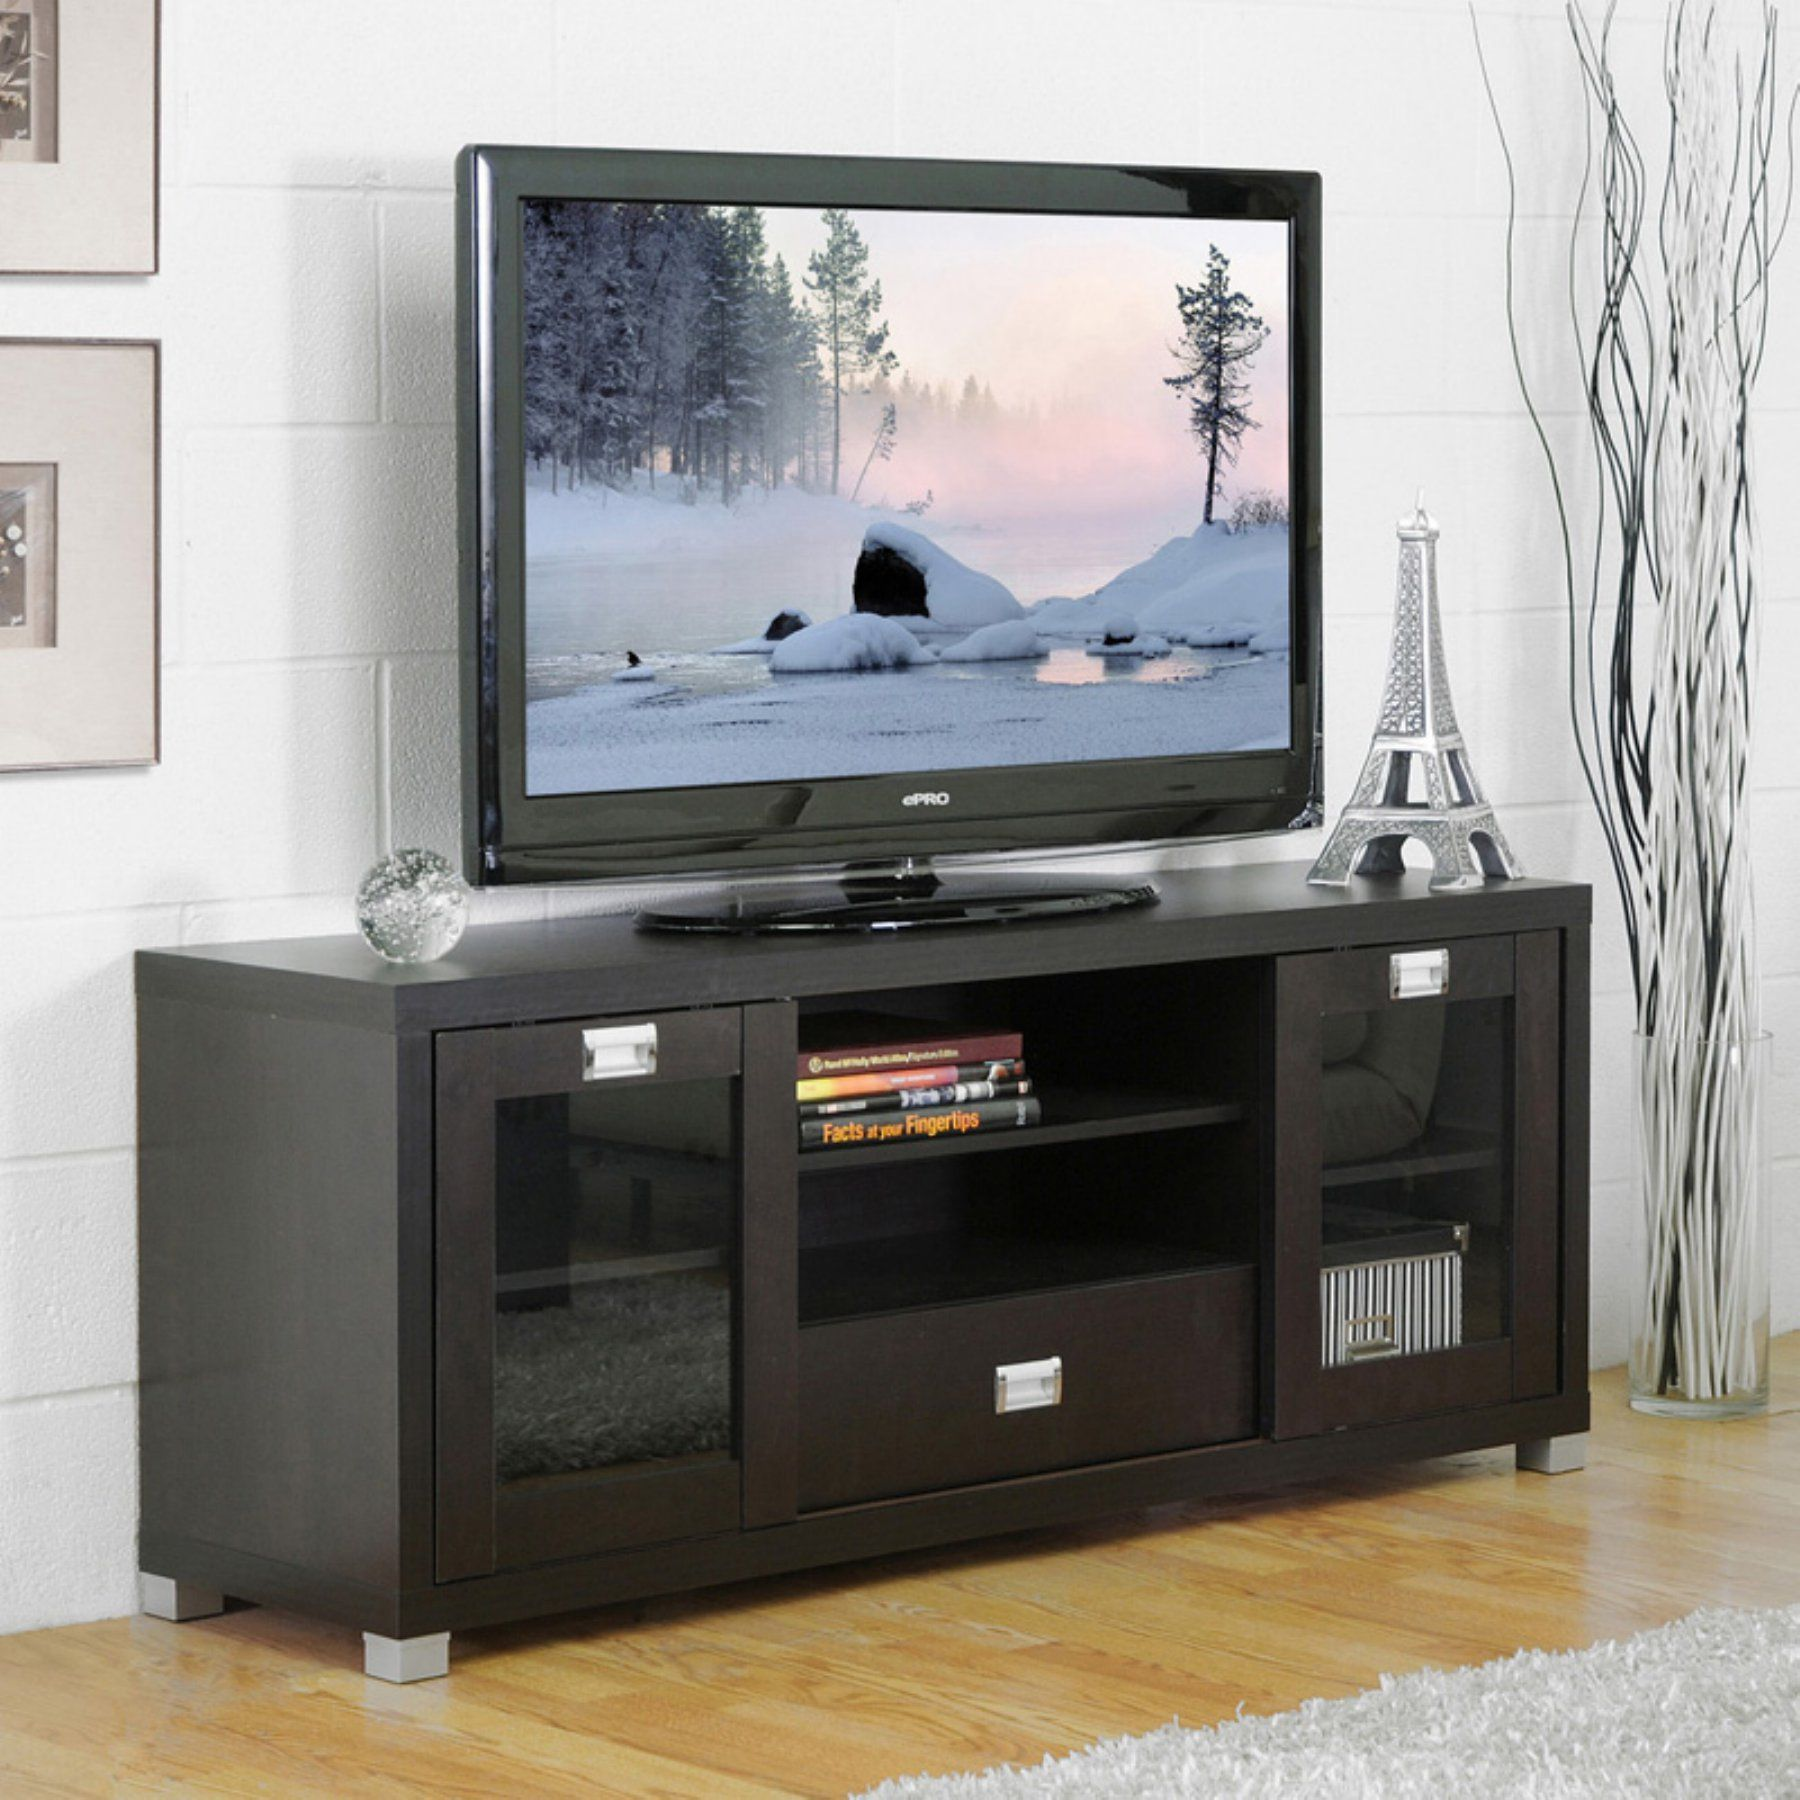 Baxton Studio Matlock Tv Stand Ftv 886 Tv Stand With Glass